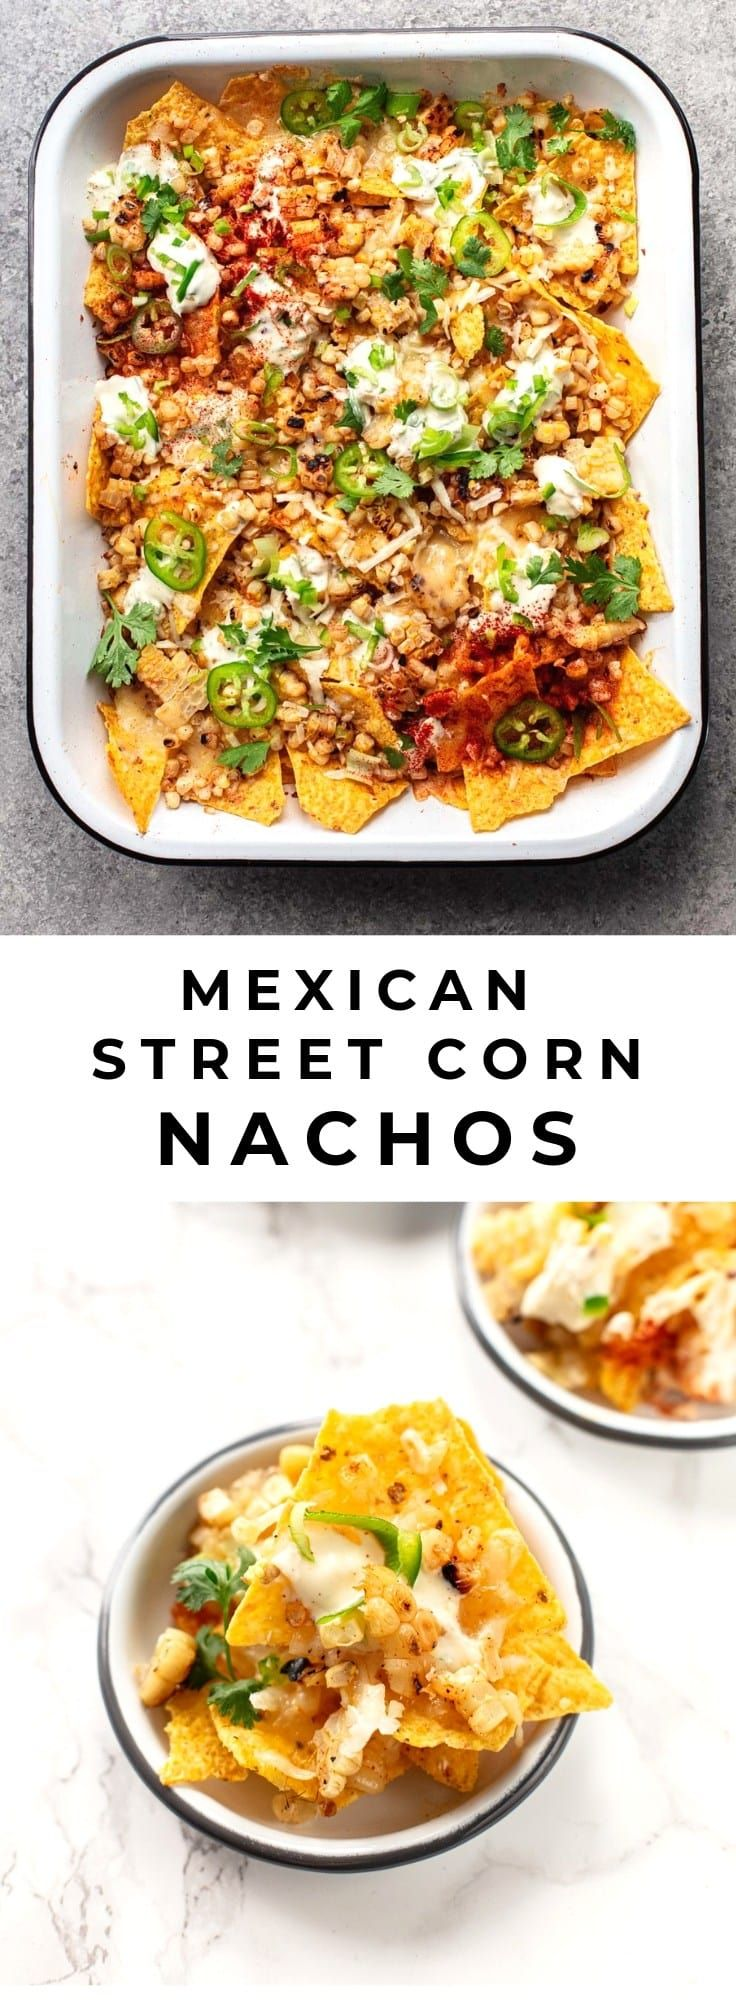 Mexican Street-Style Nachos with Sweet Corn